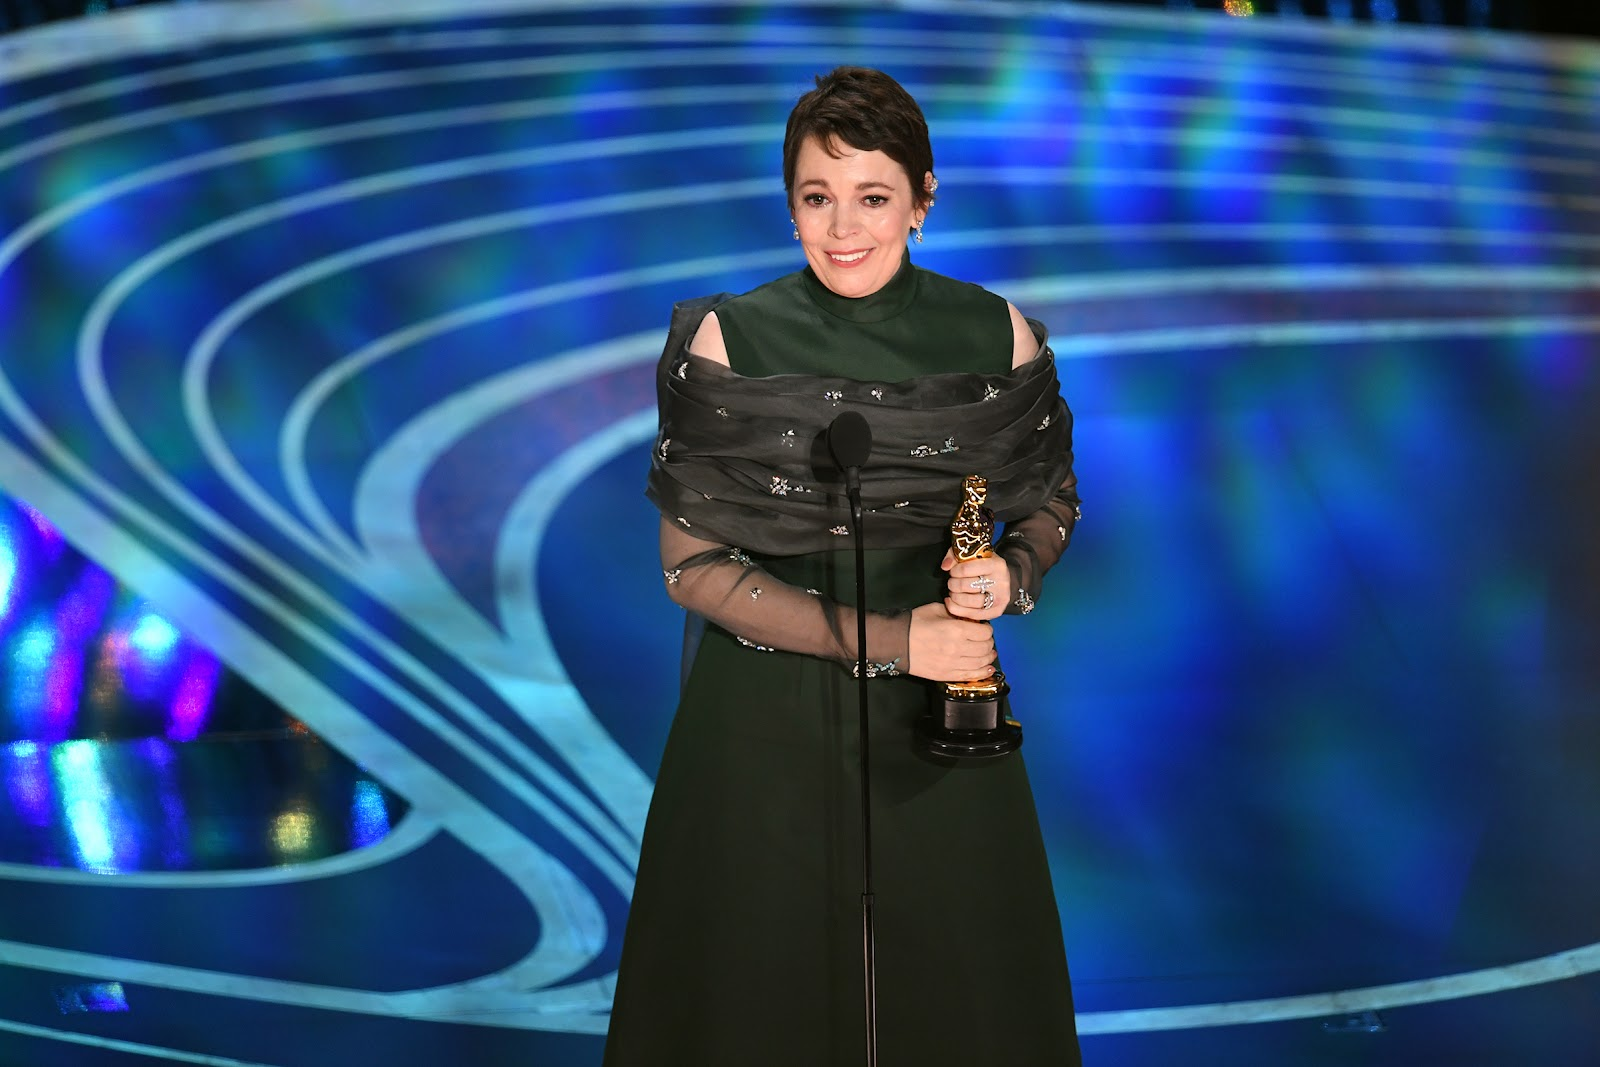 Image result for Olivia Colman 2019 oscars